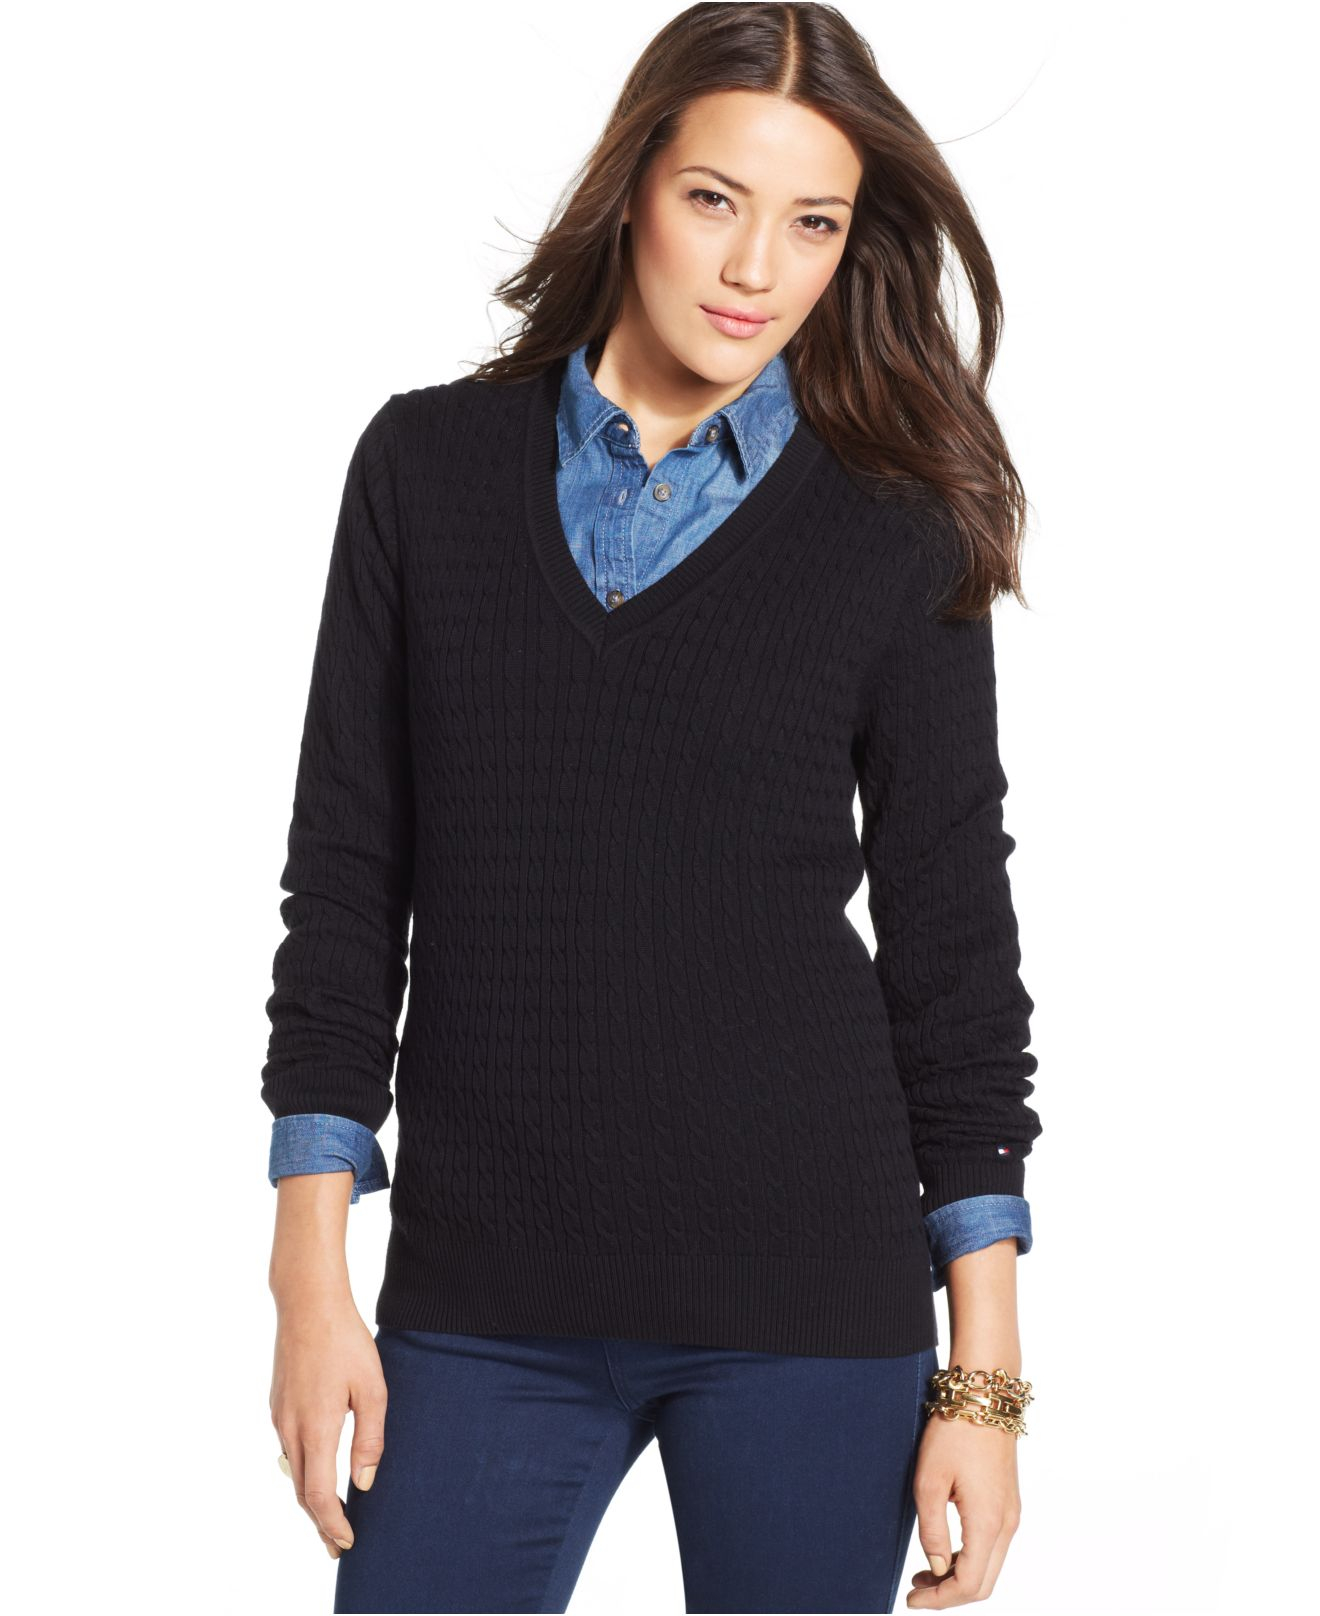 Tommy hilfiger Cable-Knit V-Neck Sweater in Black | Lyst